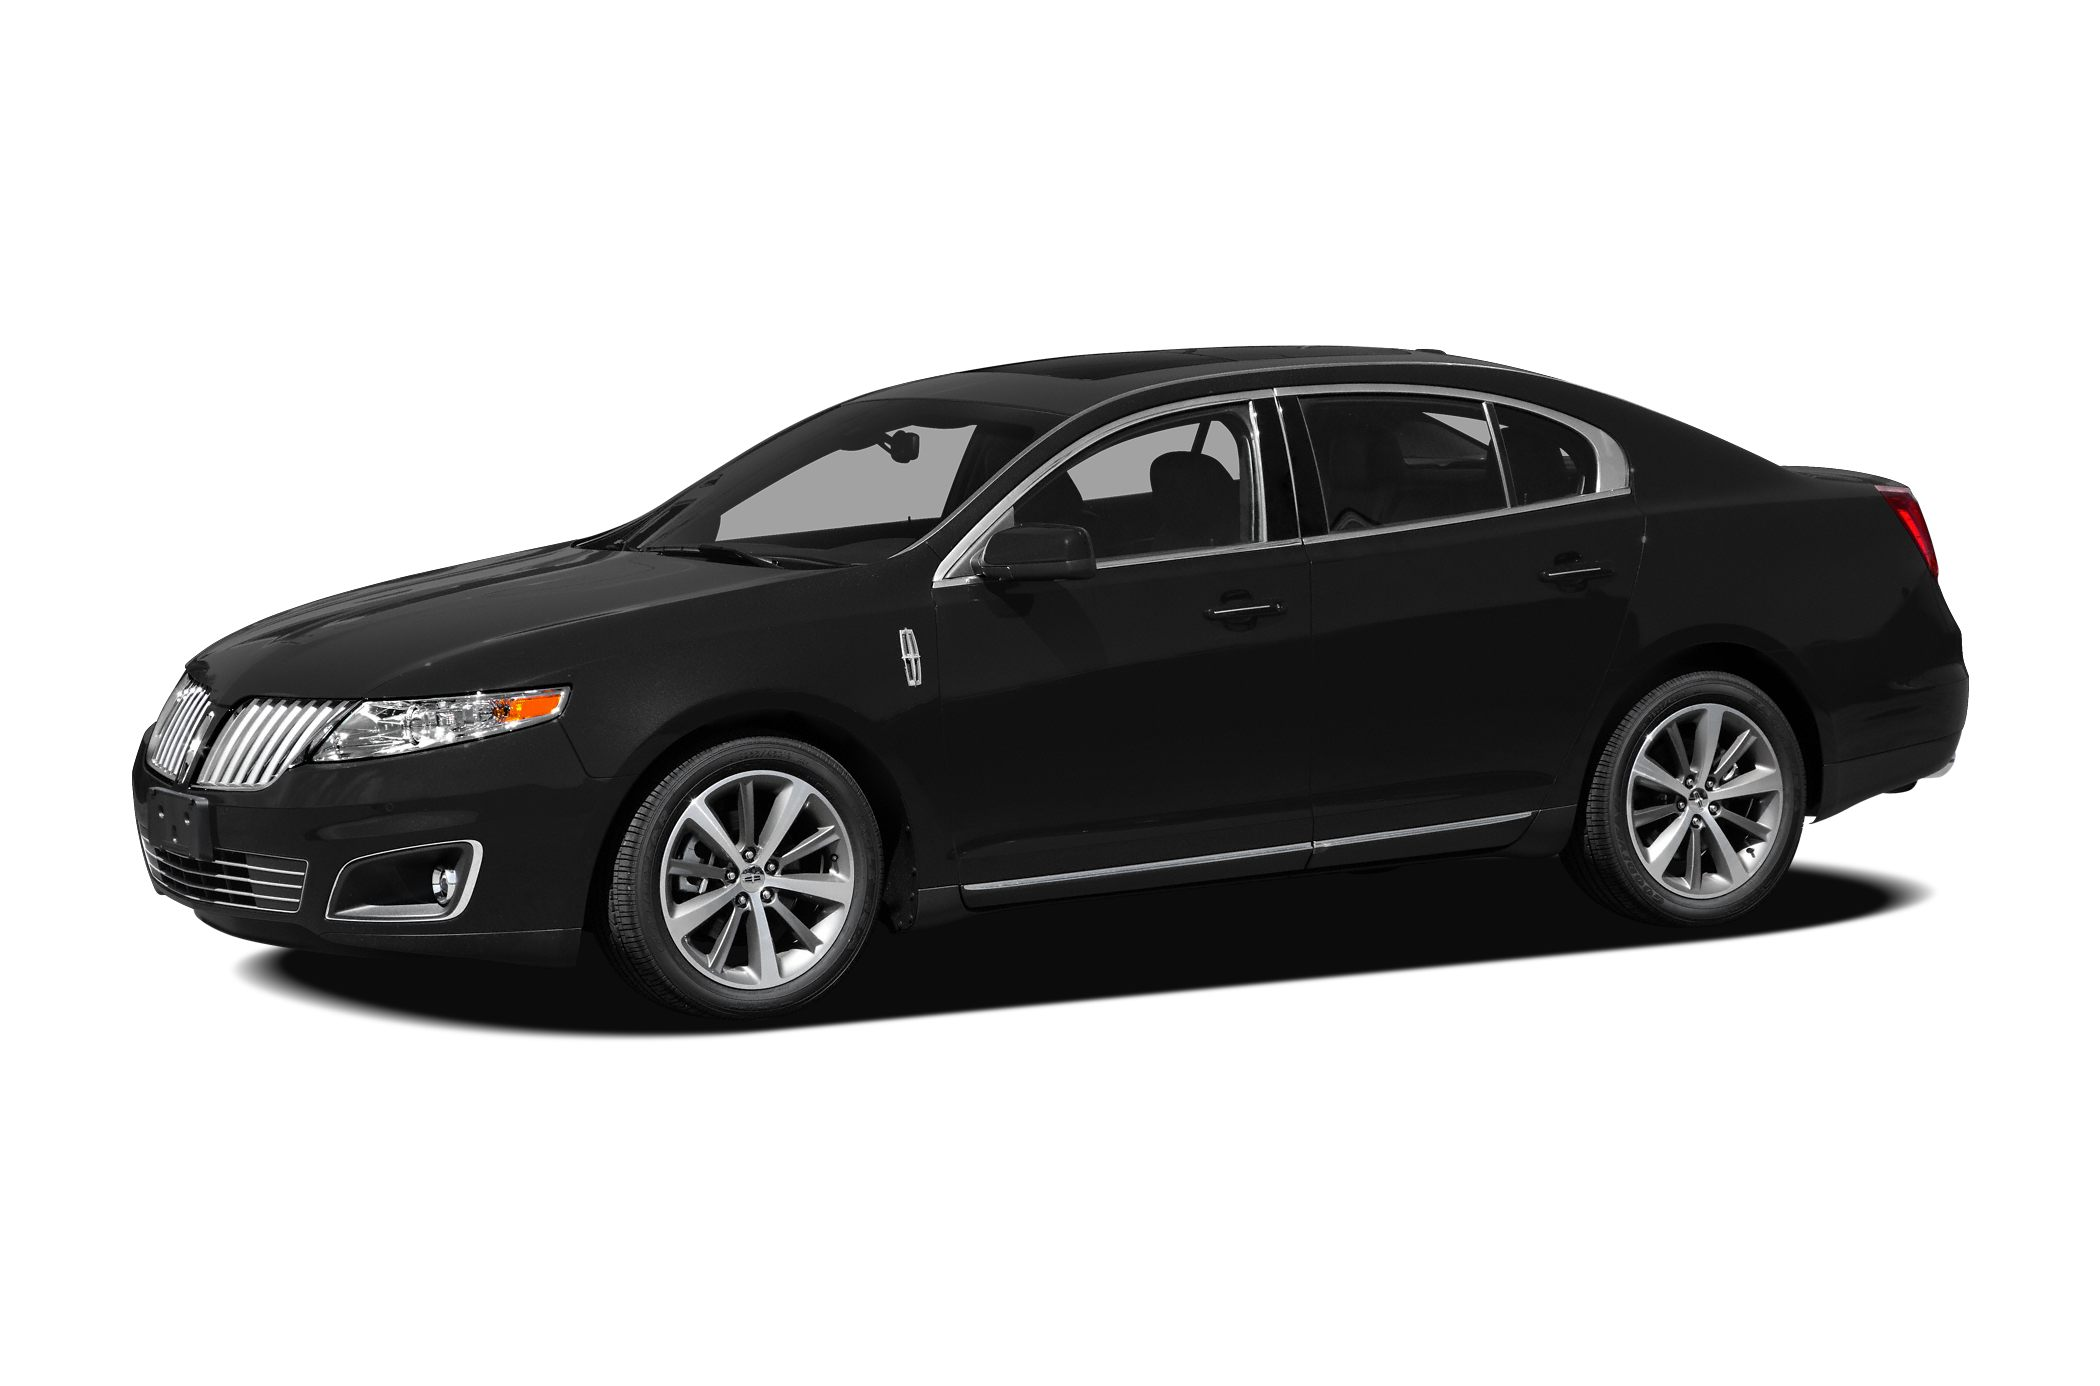 2009 Lincoln MKS Sedan for sale in Seattle for $17,995 with 46,318 miles.